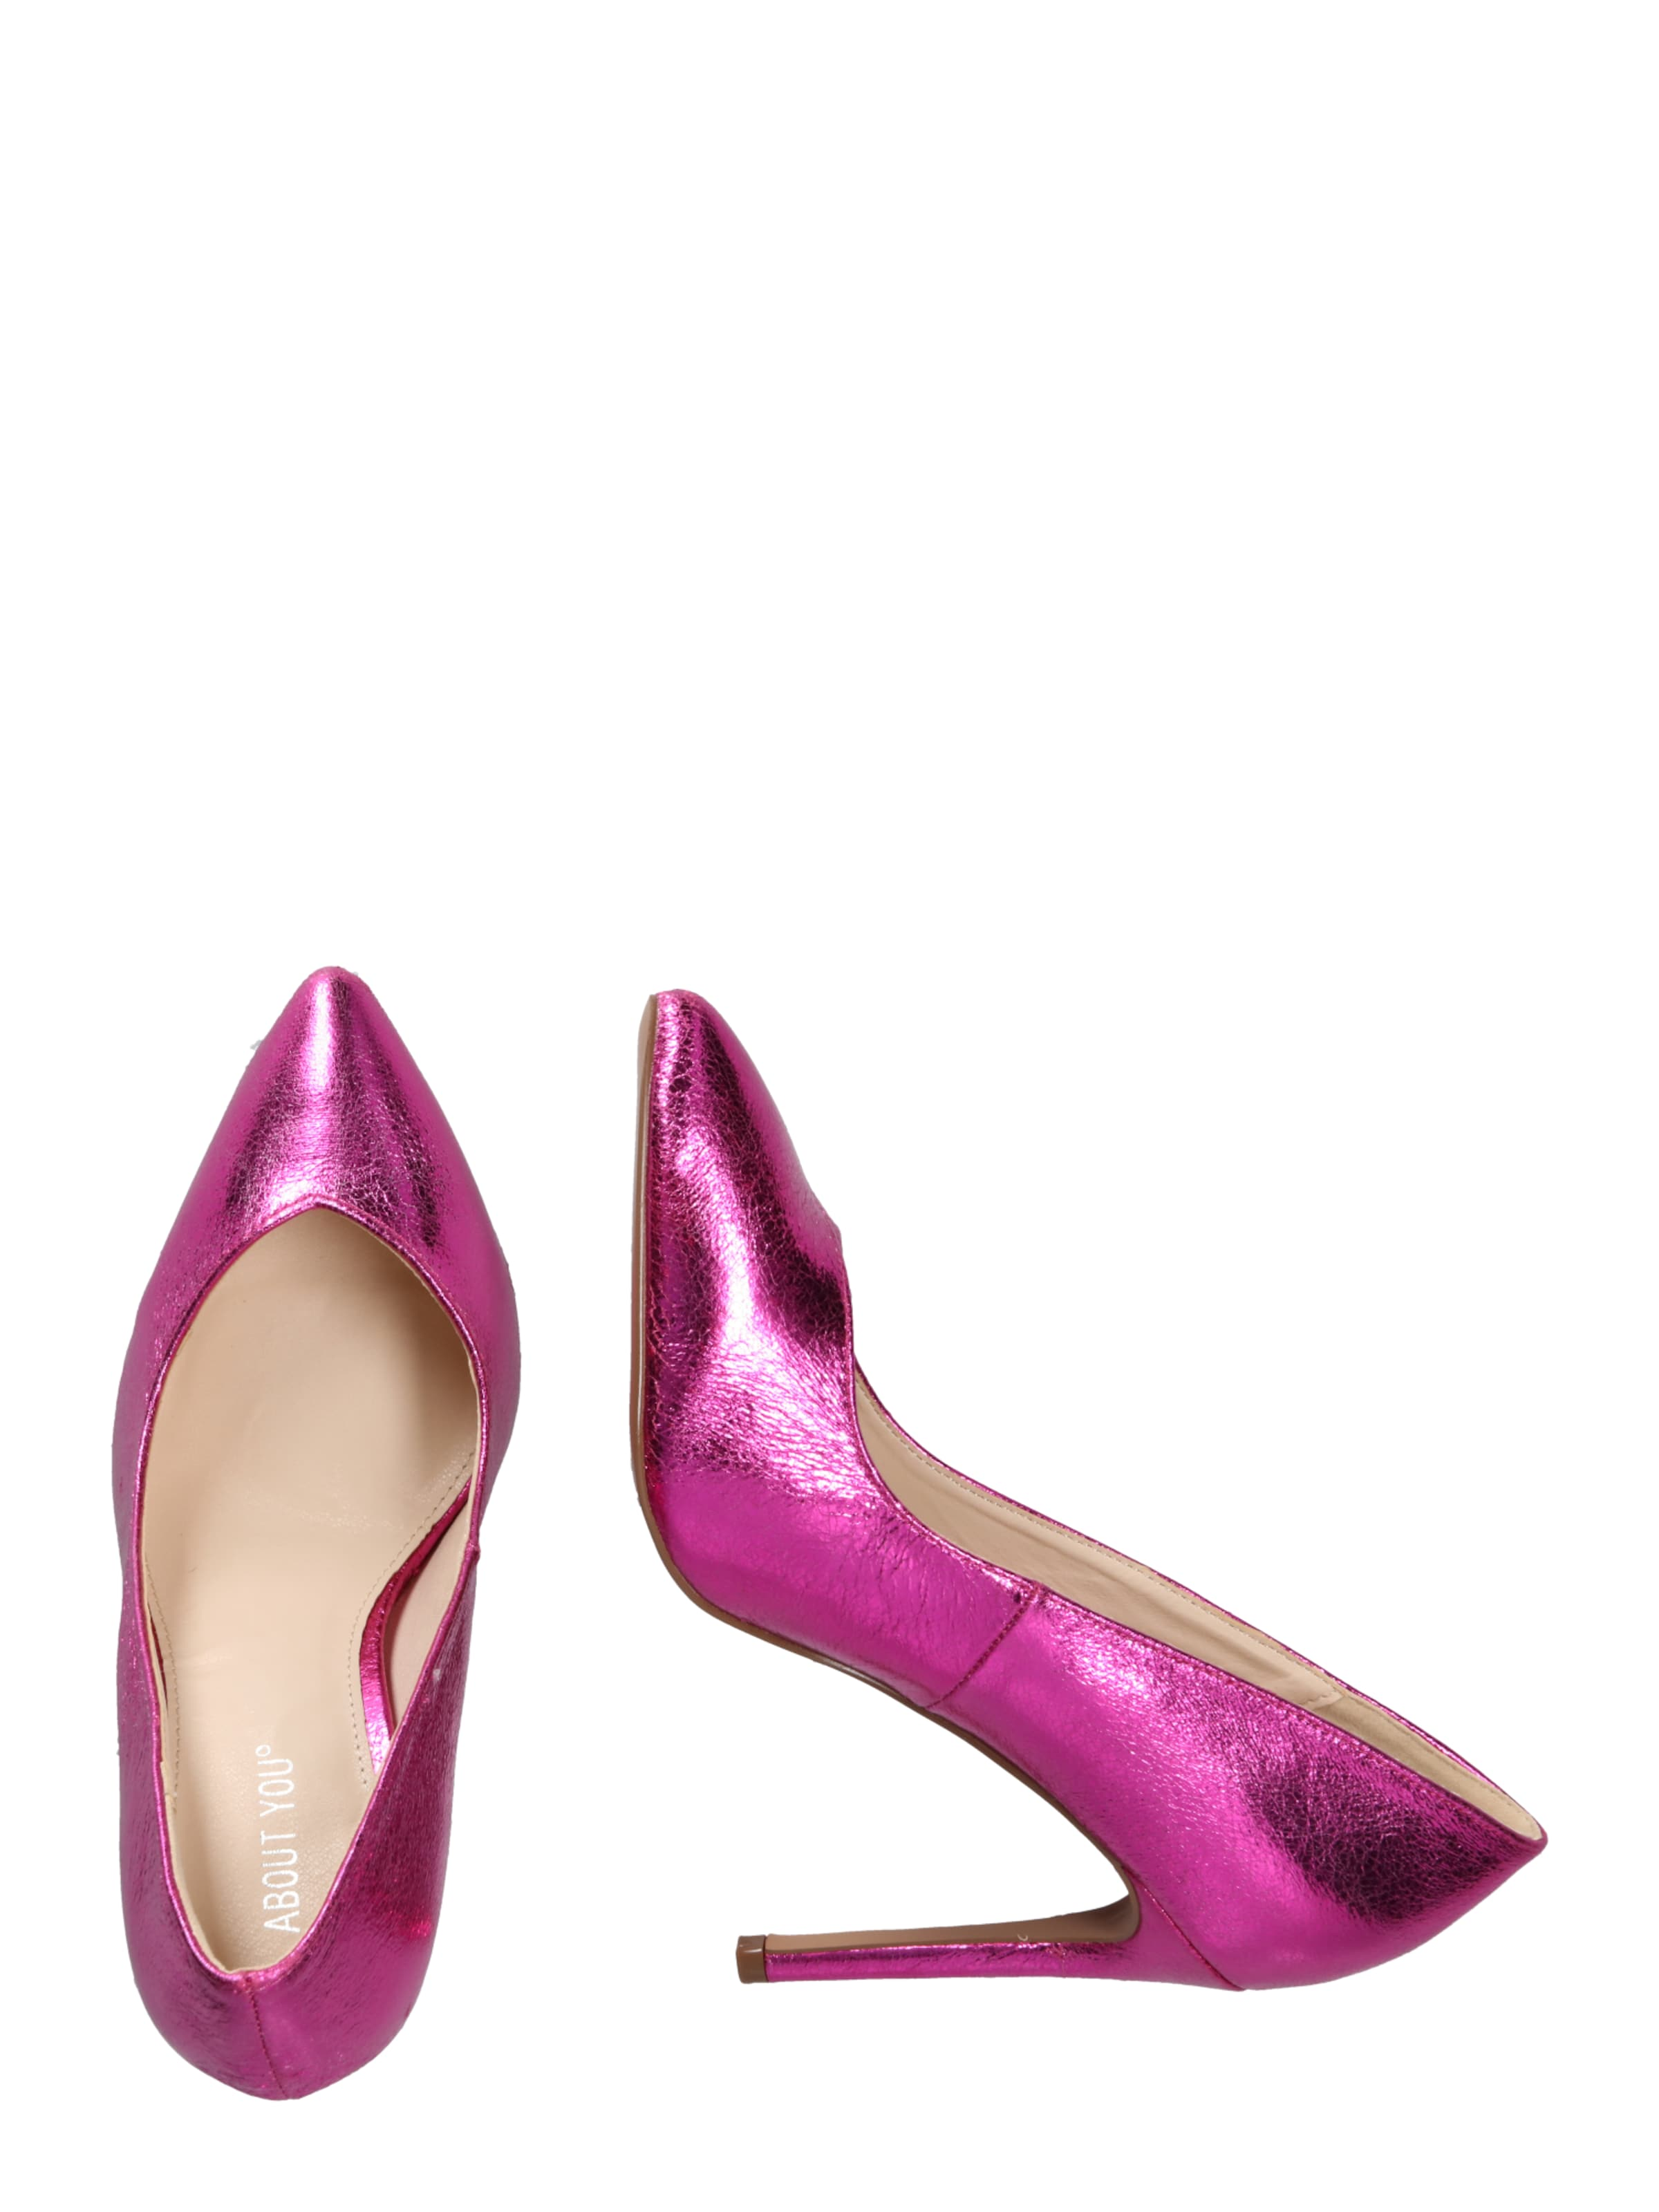 About High Fuchsia Heels 'janne' You In 7g6vfIYbym